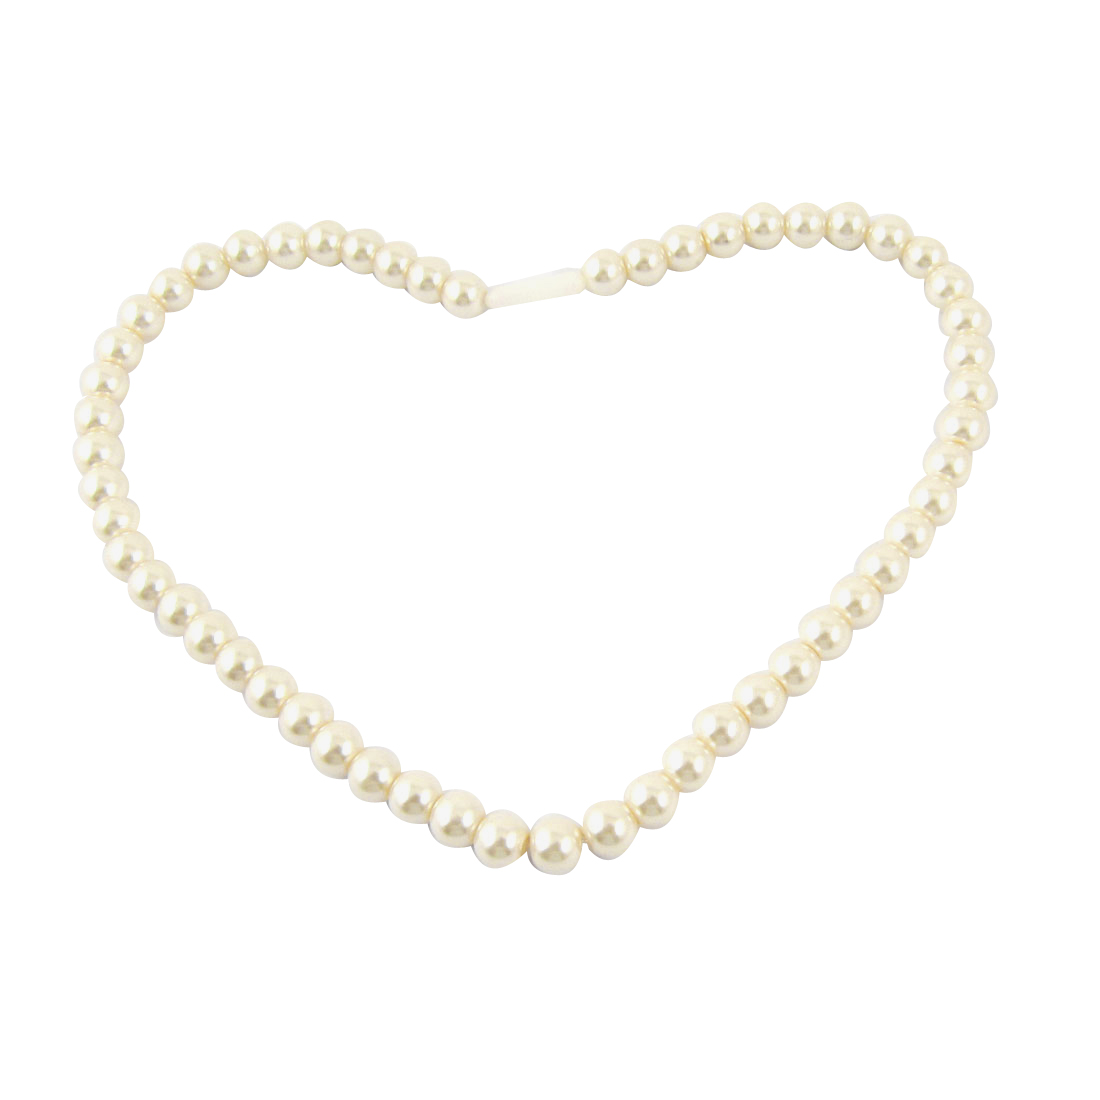 Women Jewelry White Faux Pearl Beads Detail Beaded Party Necklace Gift